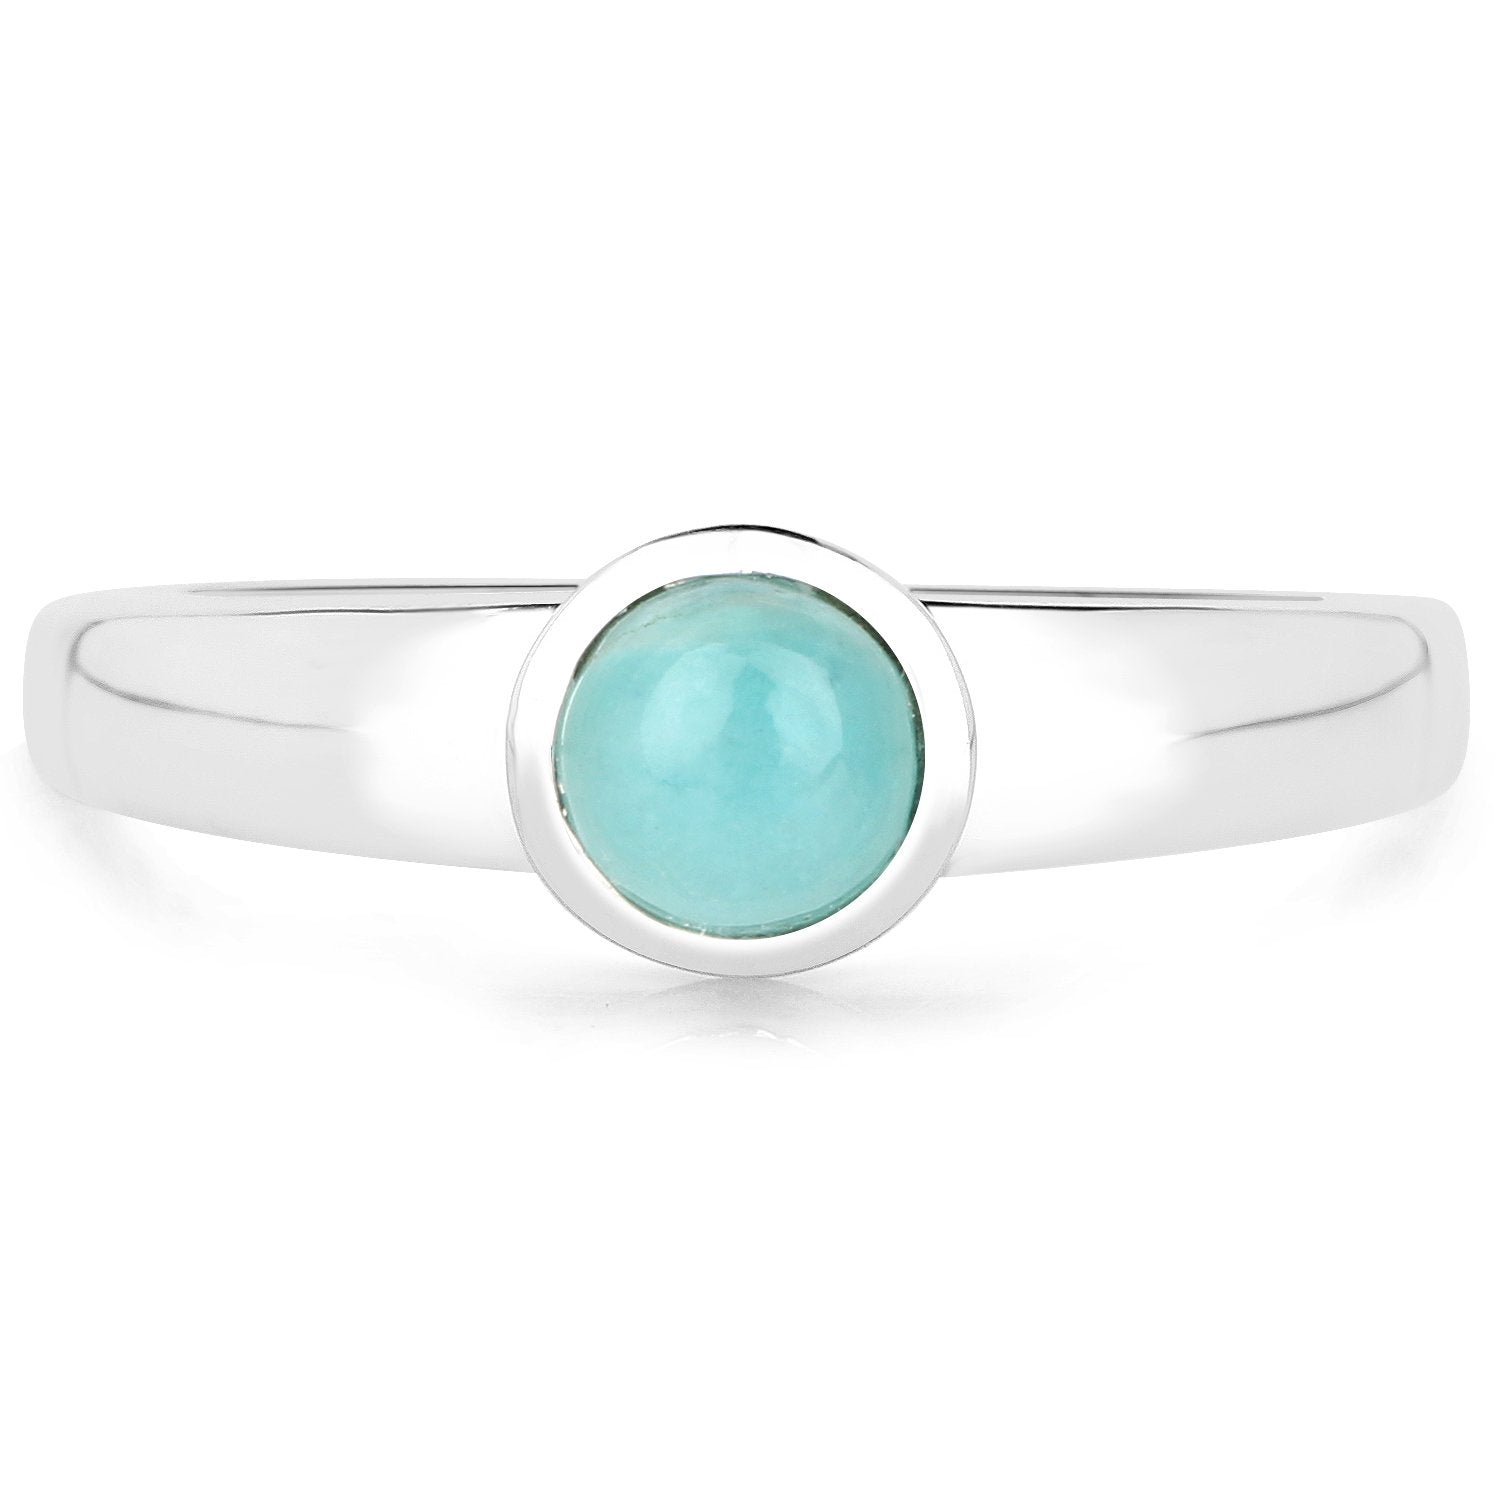 LoveHuang 0.54 Carats Genuine Amazonite Ring Solid .925 Sterling Silver With Rhodium Plating